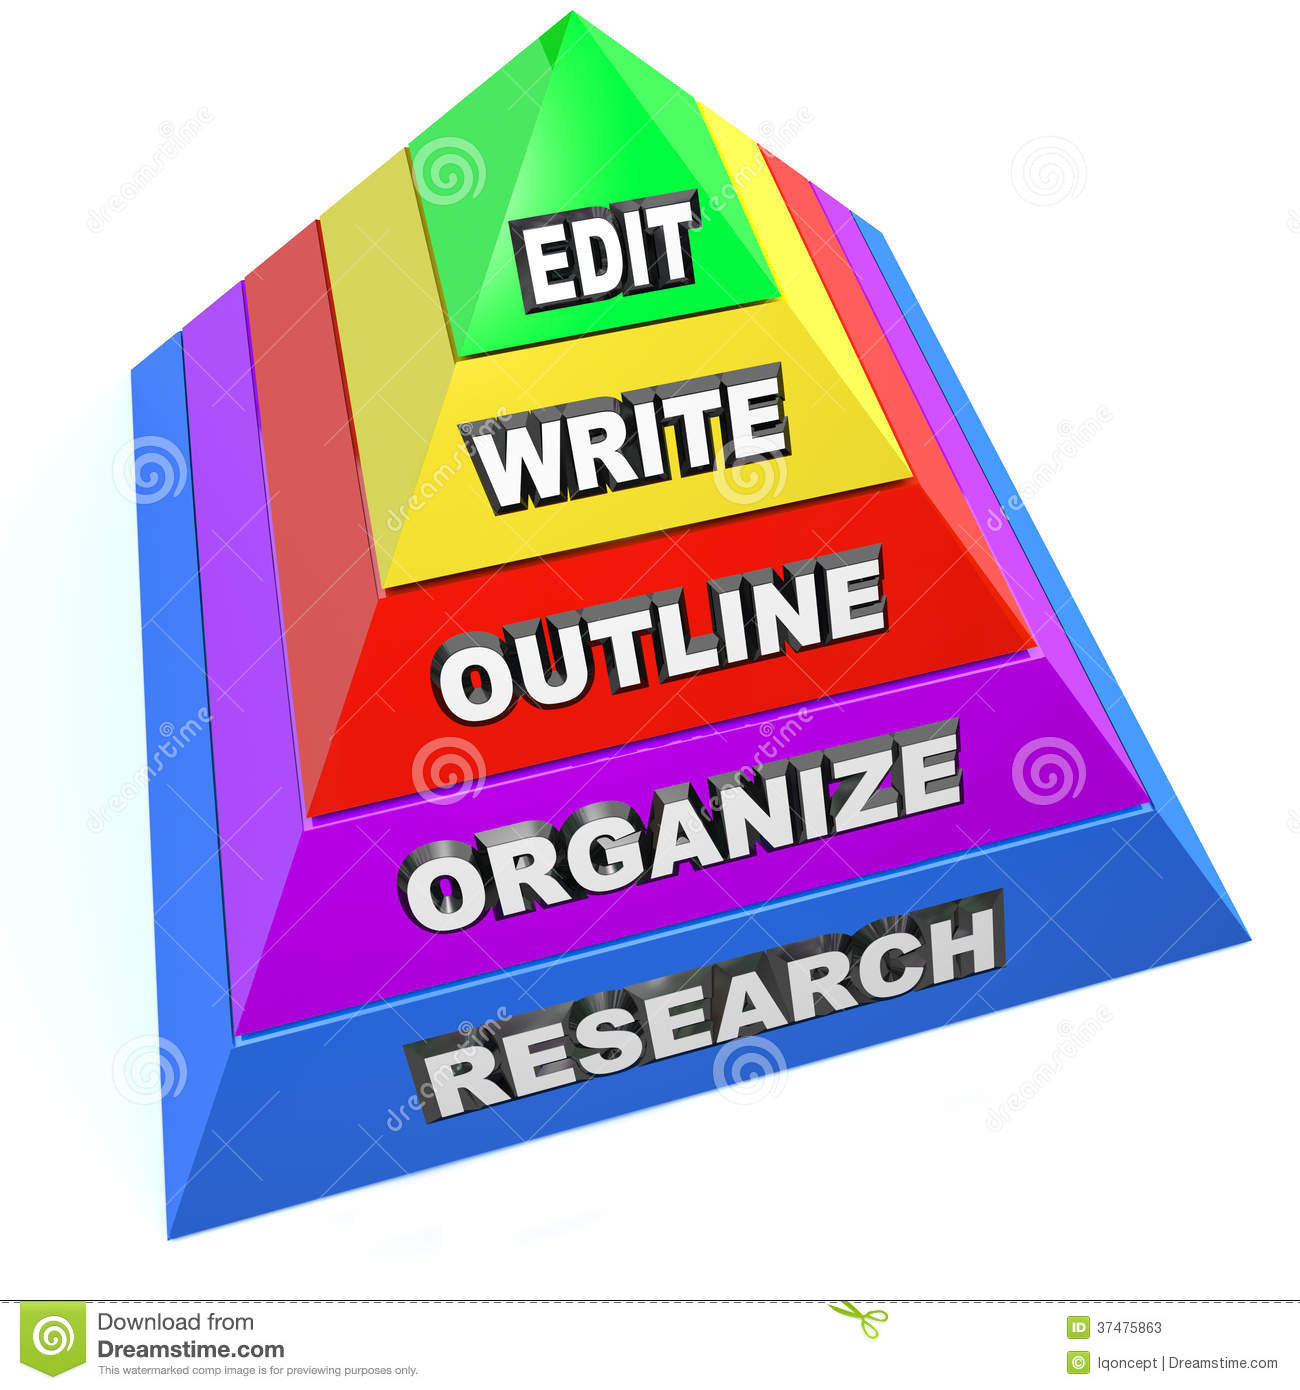 Edit Write Outline Organize Research Writing Pyramid Steps Plan  Edit Write Outline Organize And Research Steps On A Pyramid To  Illustrate A Plan For Writing A Term Paper Essay Novel Or Work Of  Nonfiction